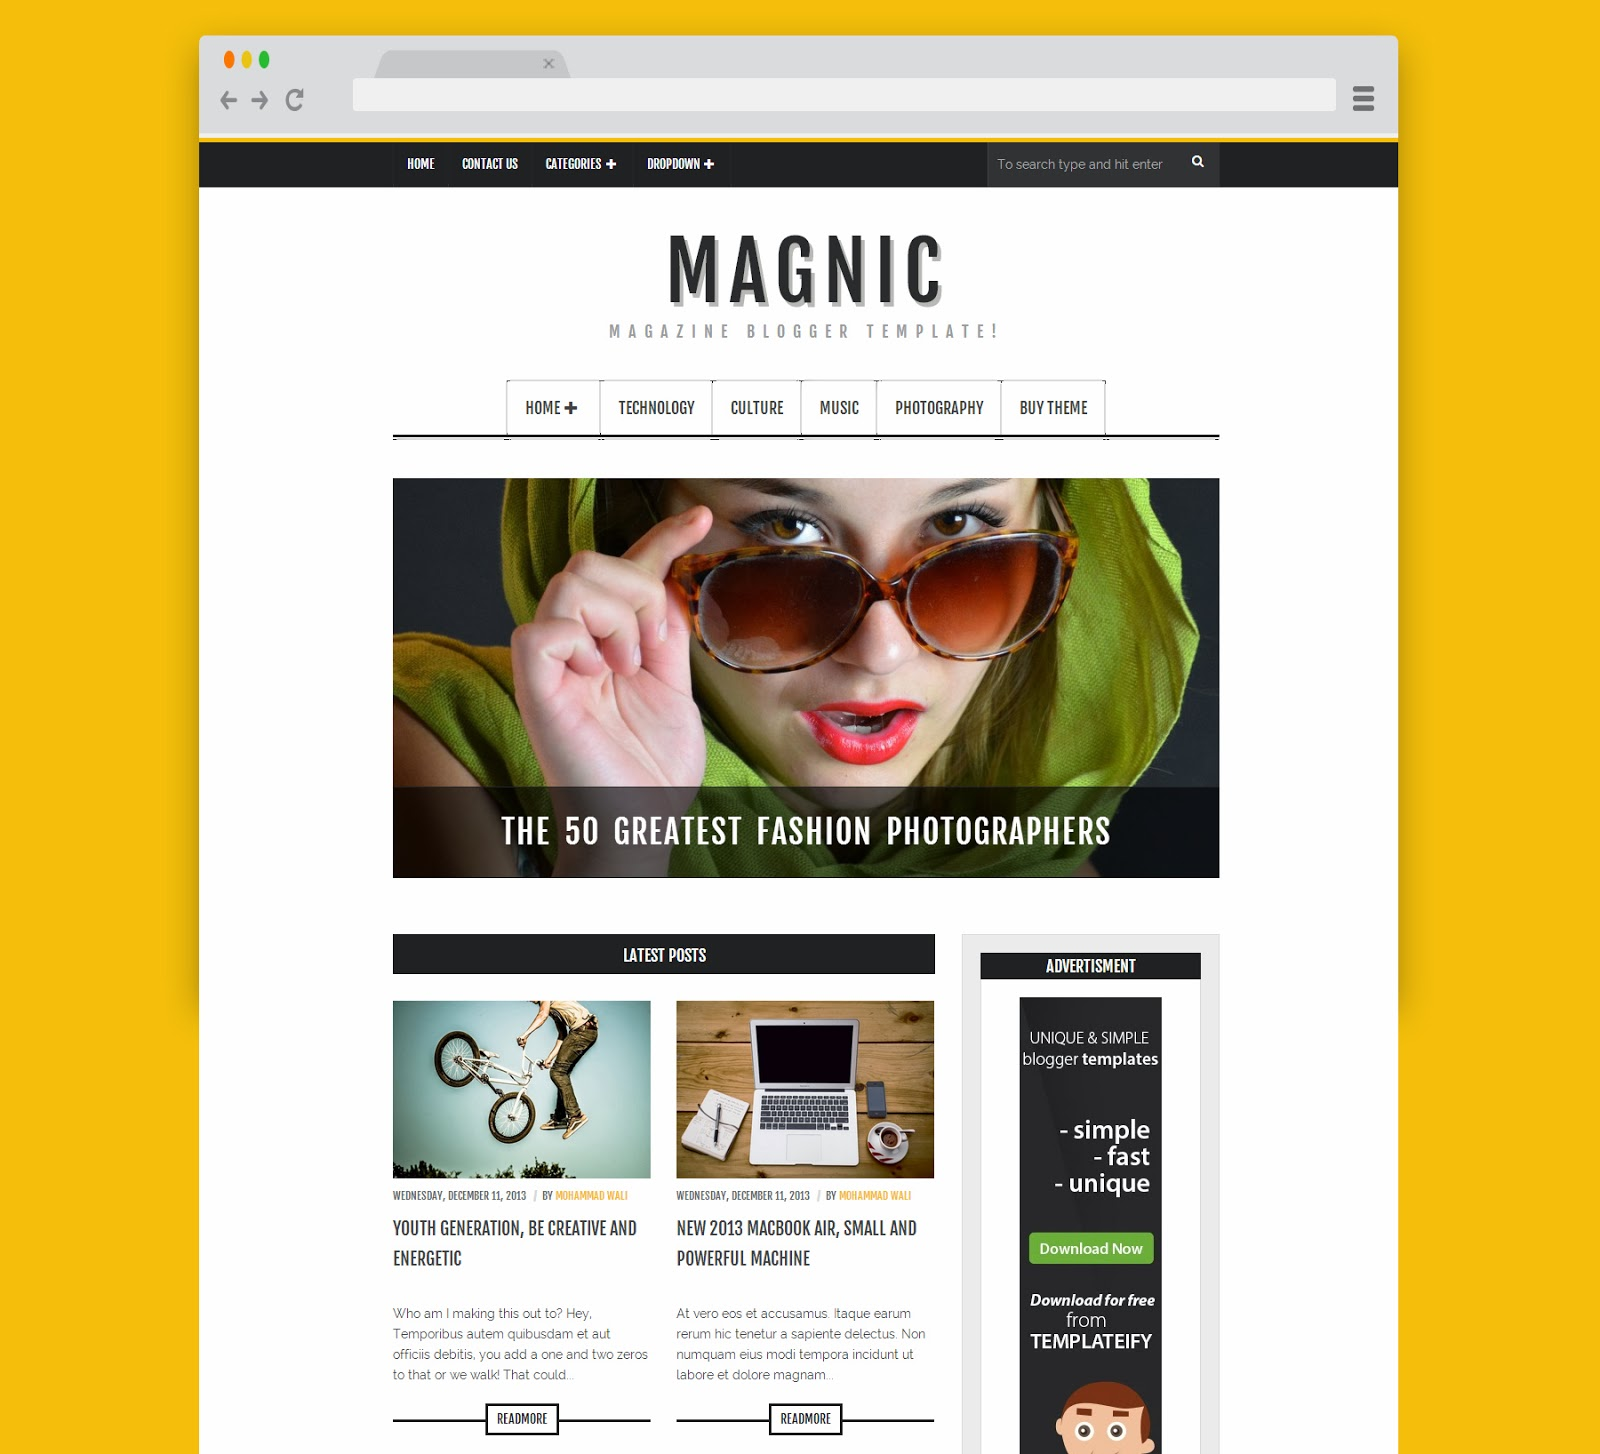 Magnic Magazine Blogger Template | Blogger Templates Gallery